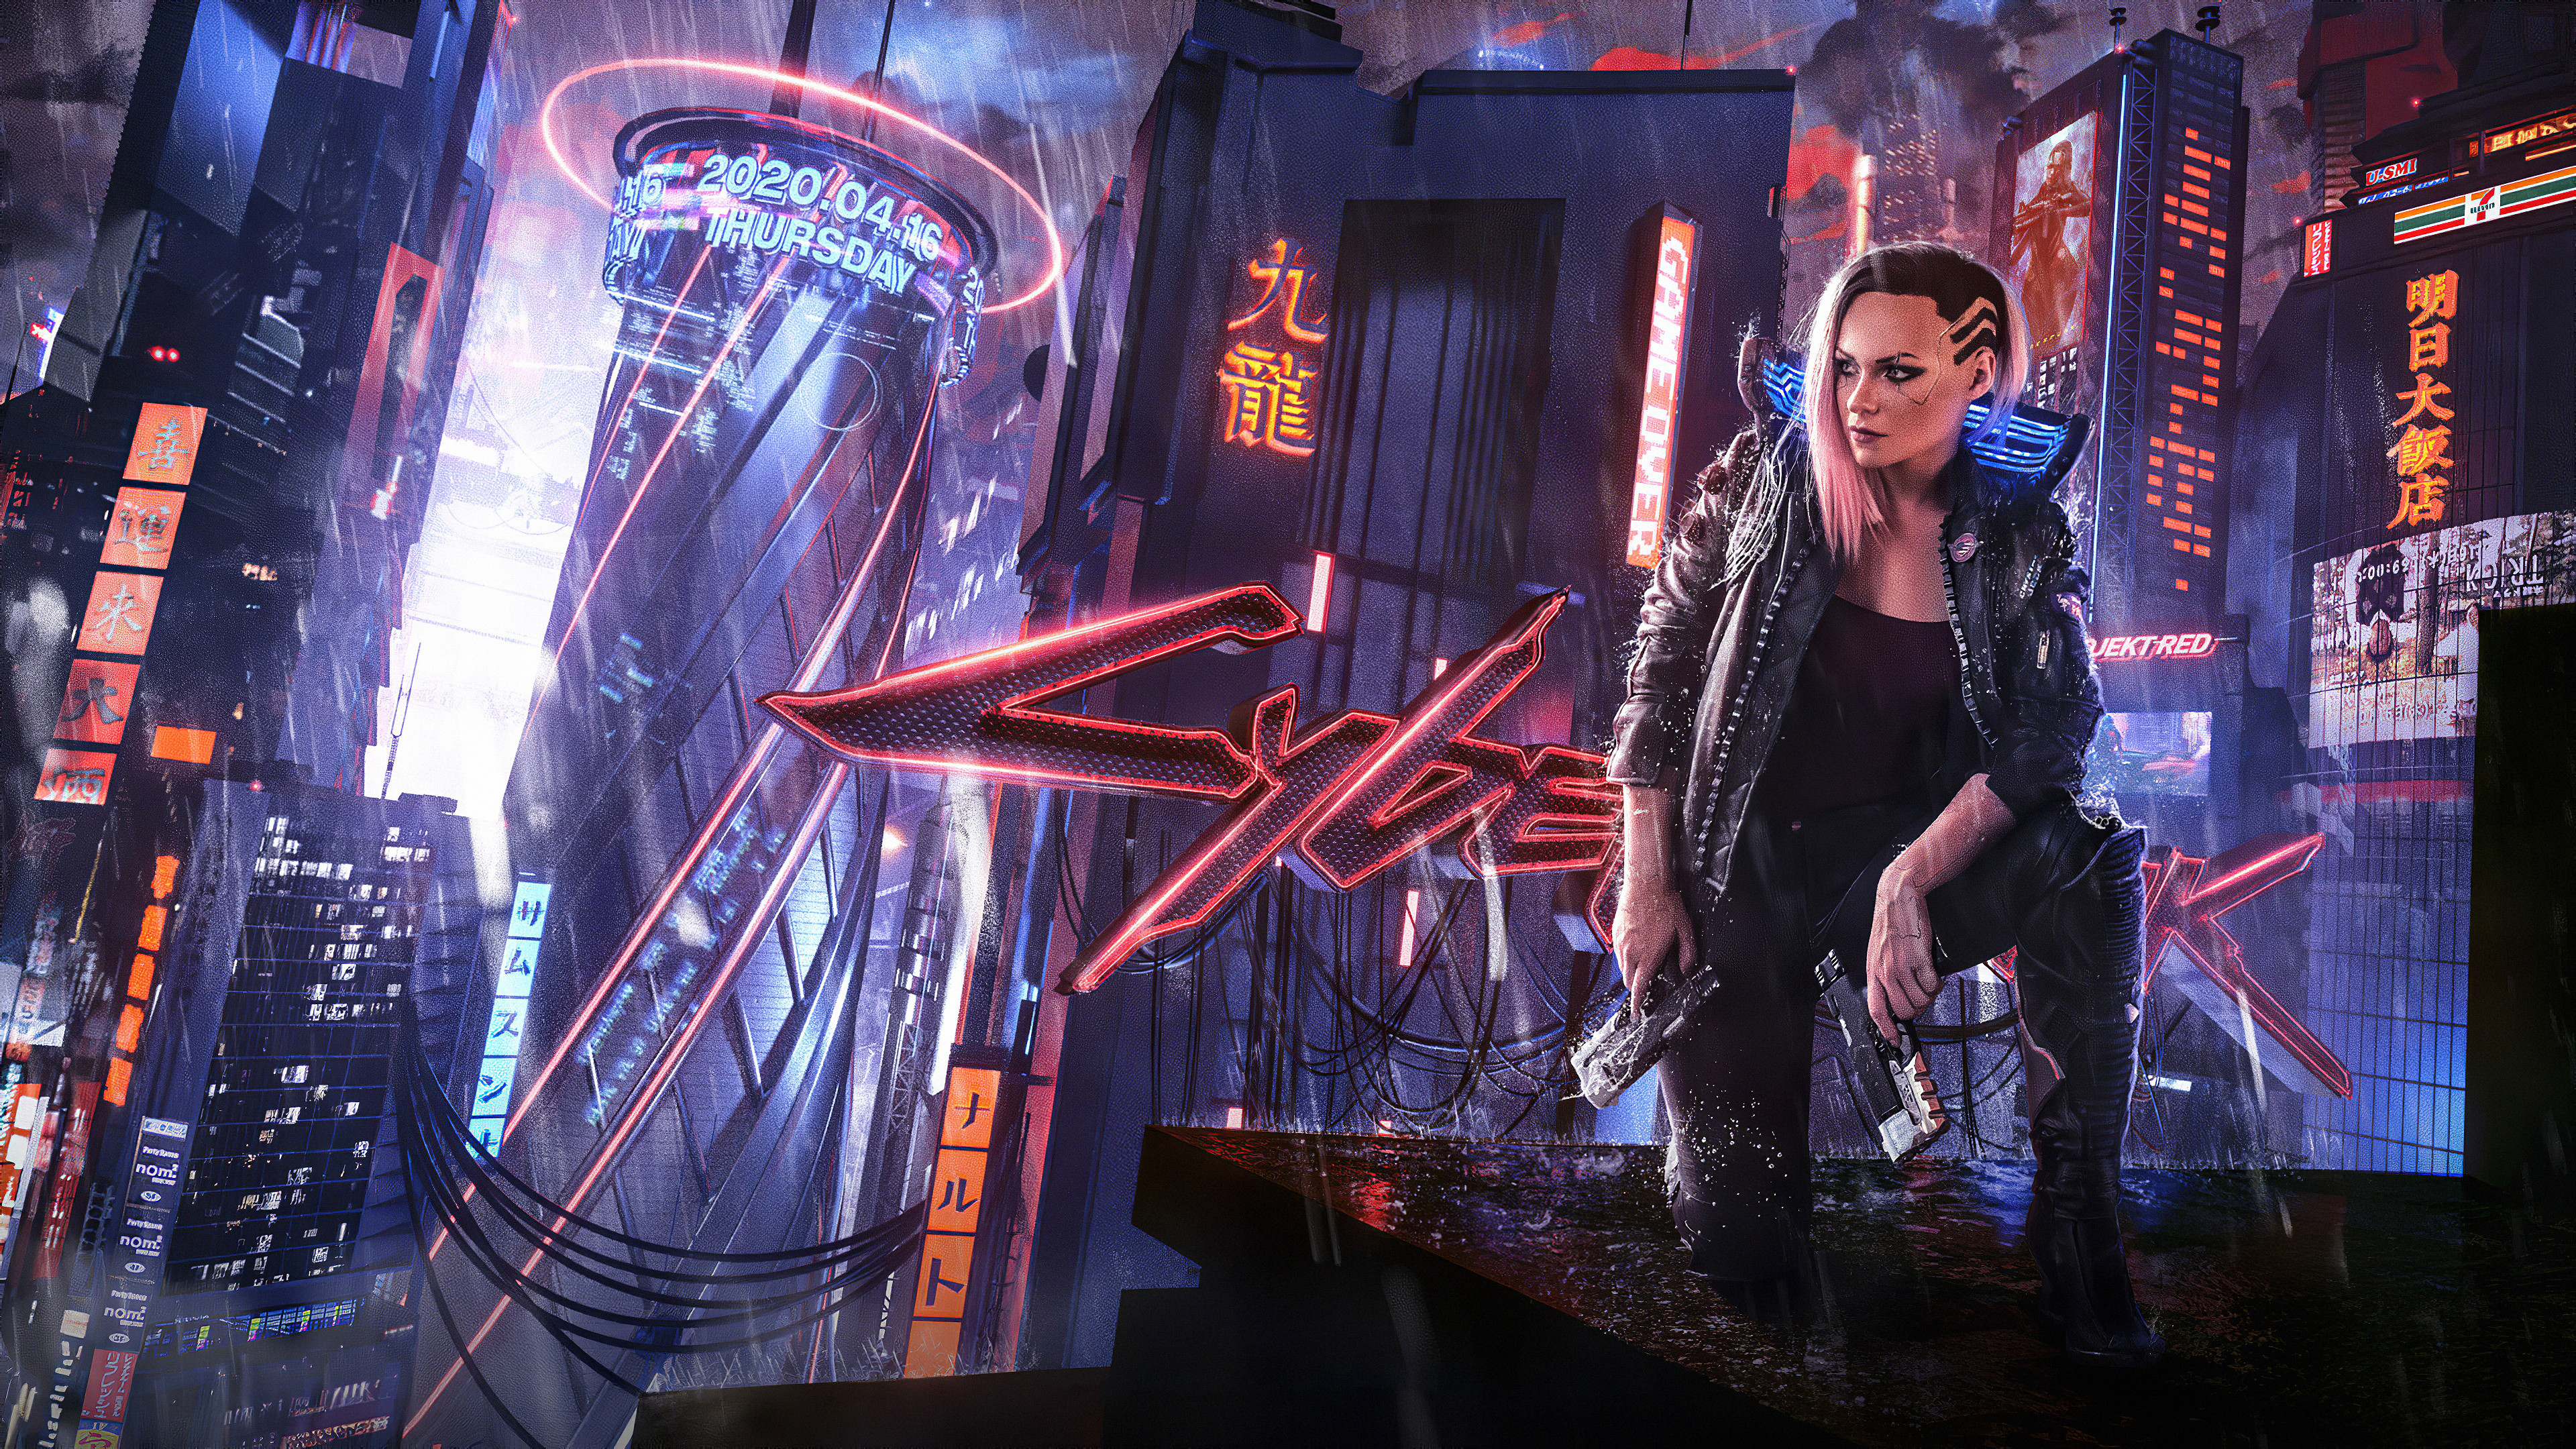 Wallpaper 4k Cyberpunk Girl 2077 Cyberpunk 2077 Games Girl Wallpaper Cyberpunk Girl 2077 4k Wallpapers Cyberpunk Girl Wallpappers